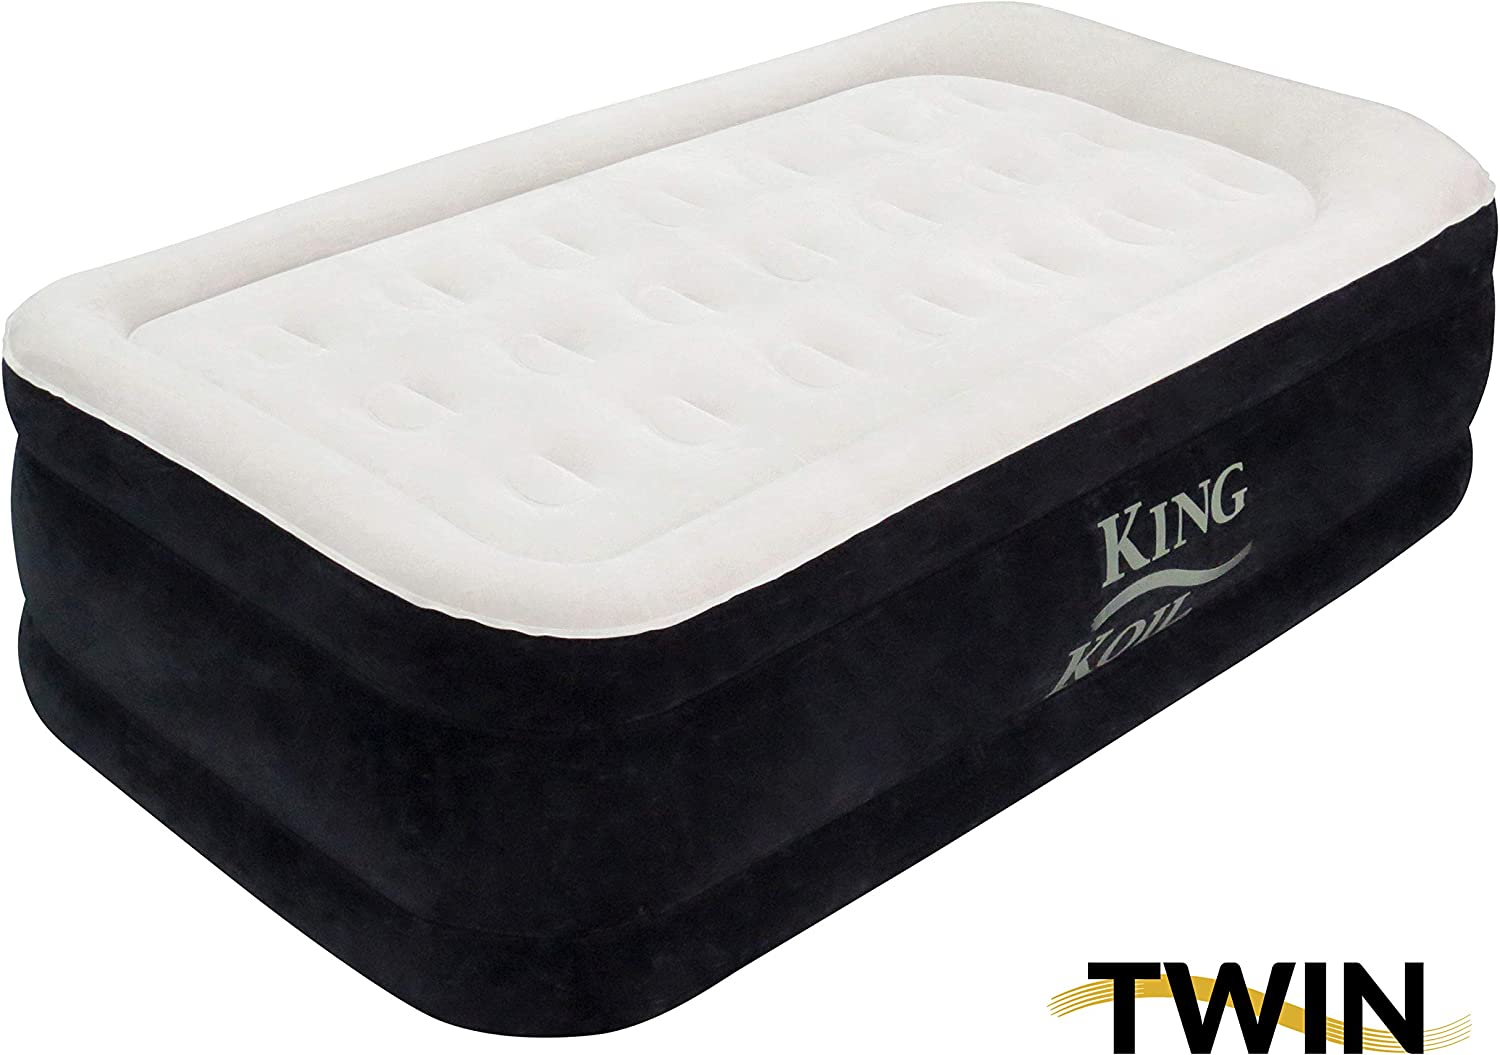 King Koil Twin Air Mattress with Built-in Pump - Double High Elevated Raised Airbed for Guests with Comfortable Top ONLY Bed with 1-Year Manufacturer ...